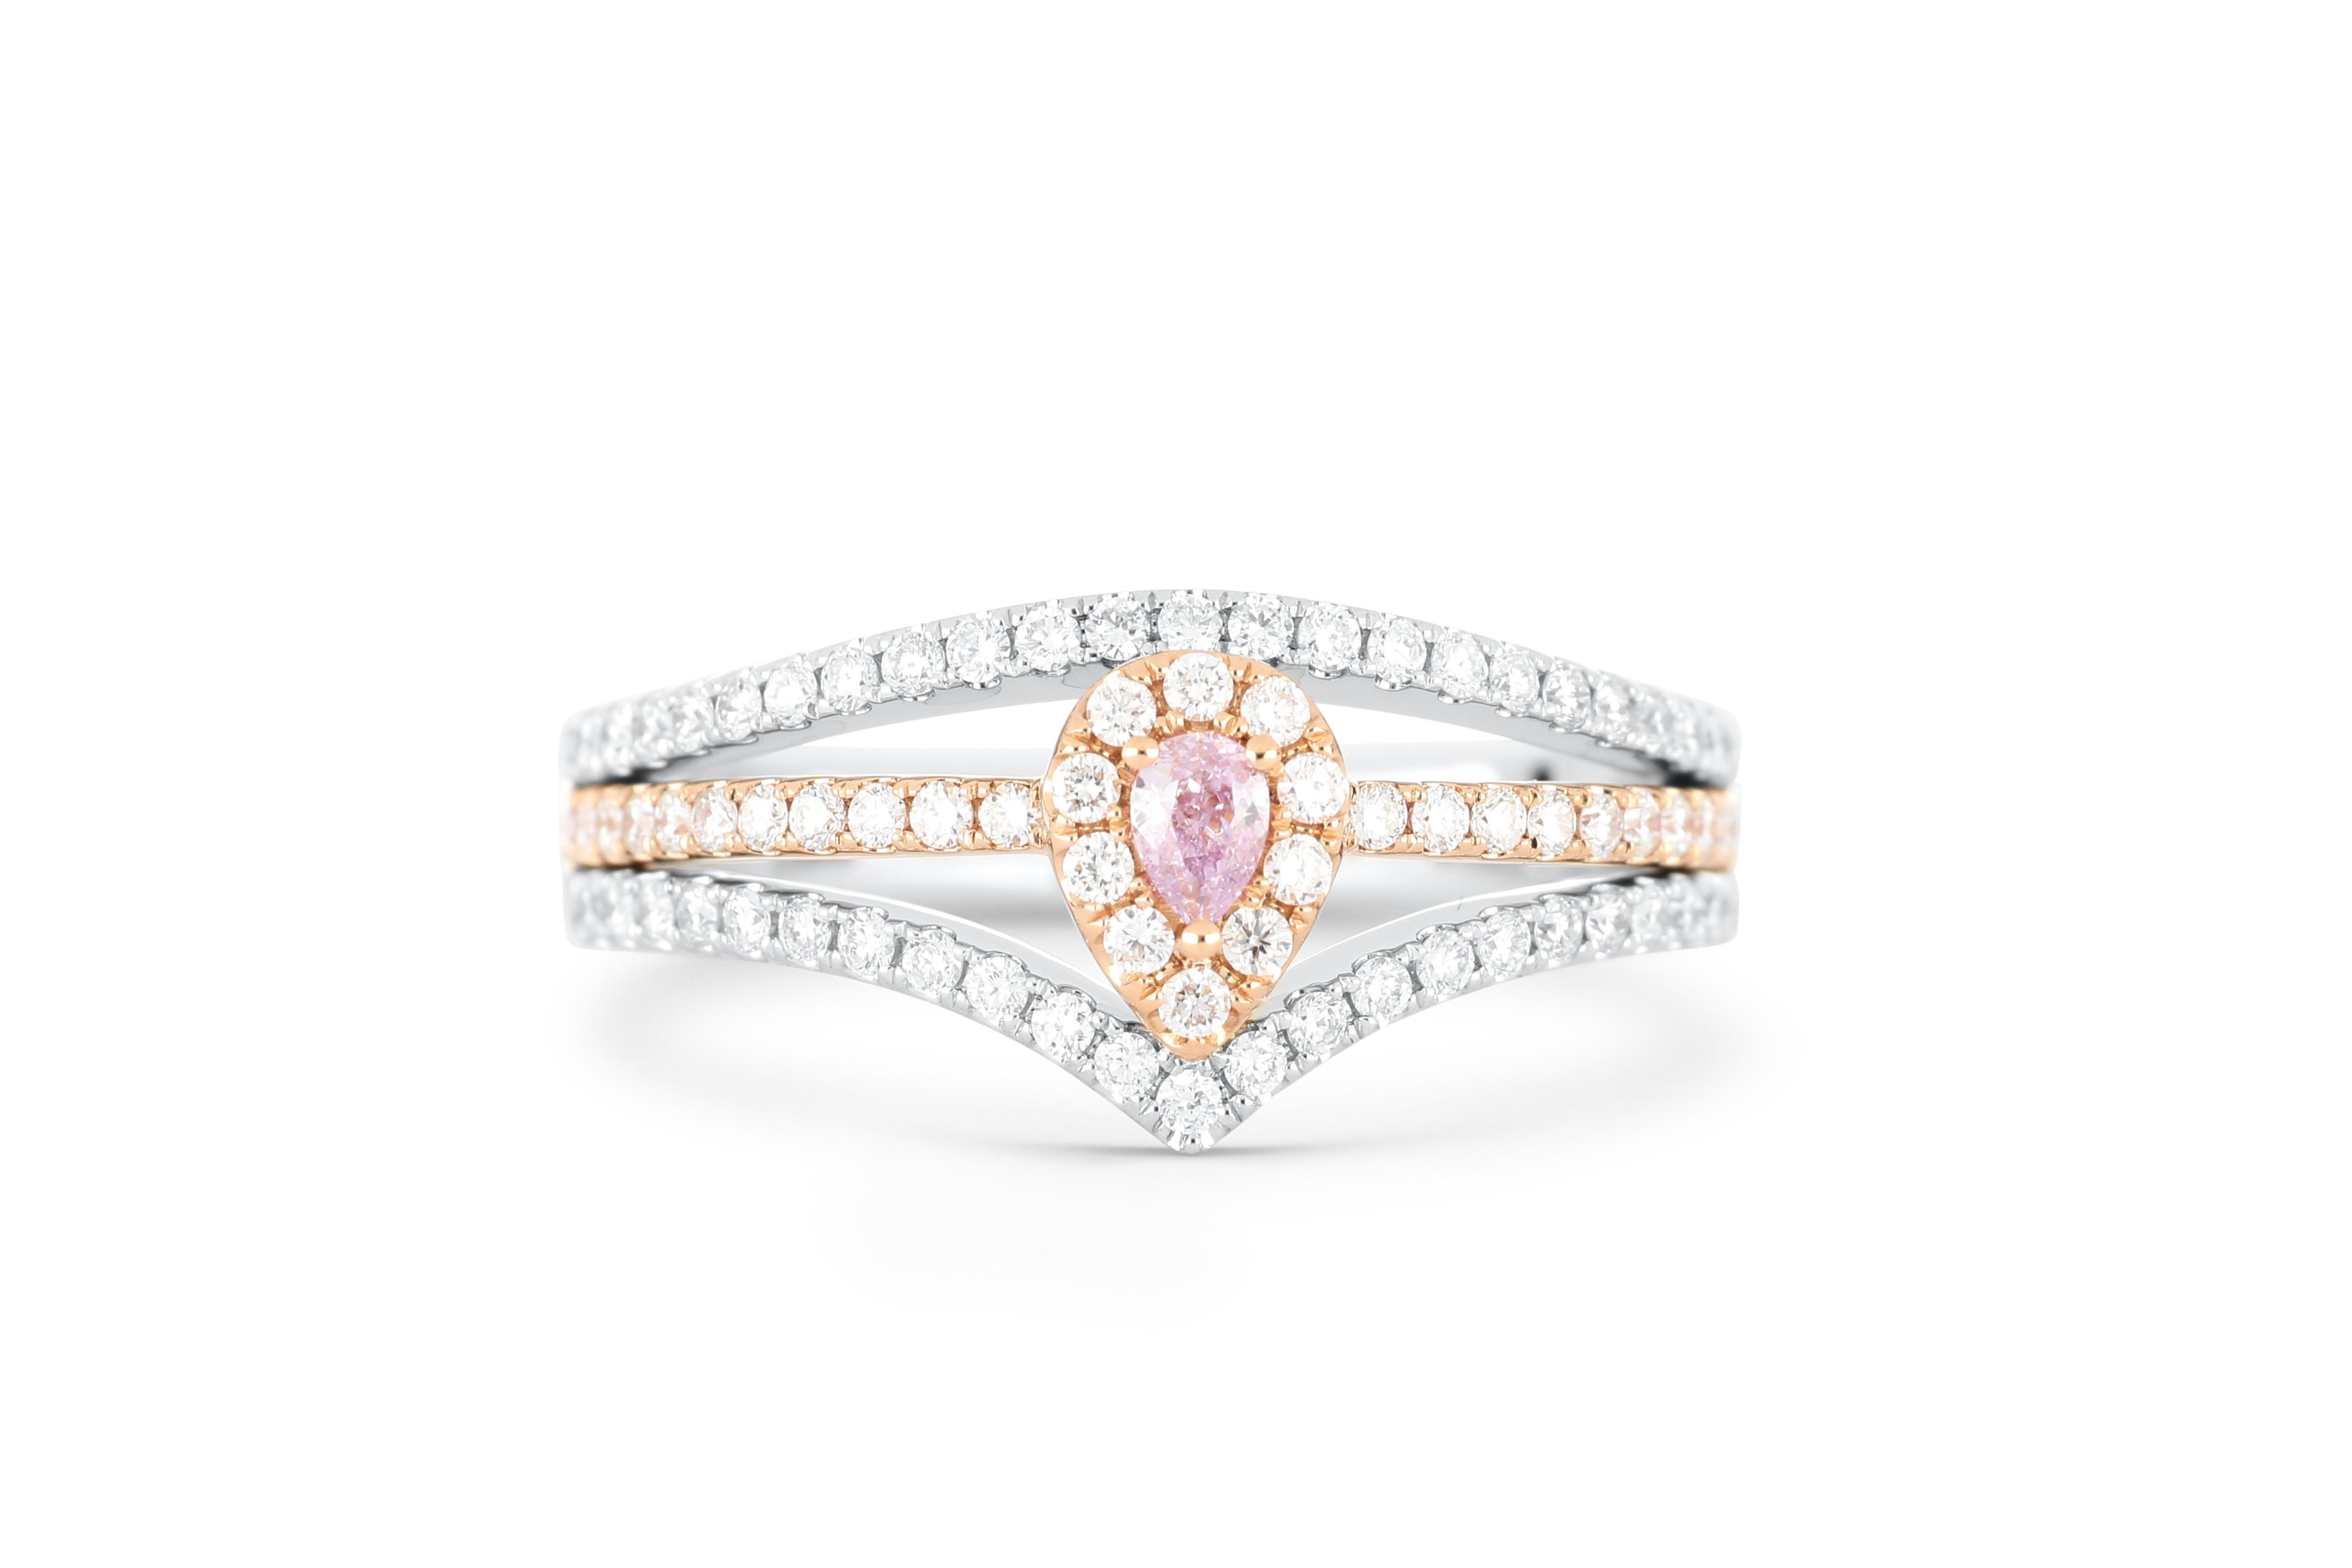 18k gold ring set with a centre FLPP 0.082ct pear cut natural diamond